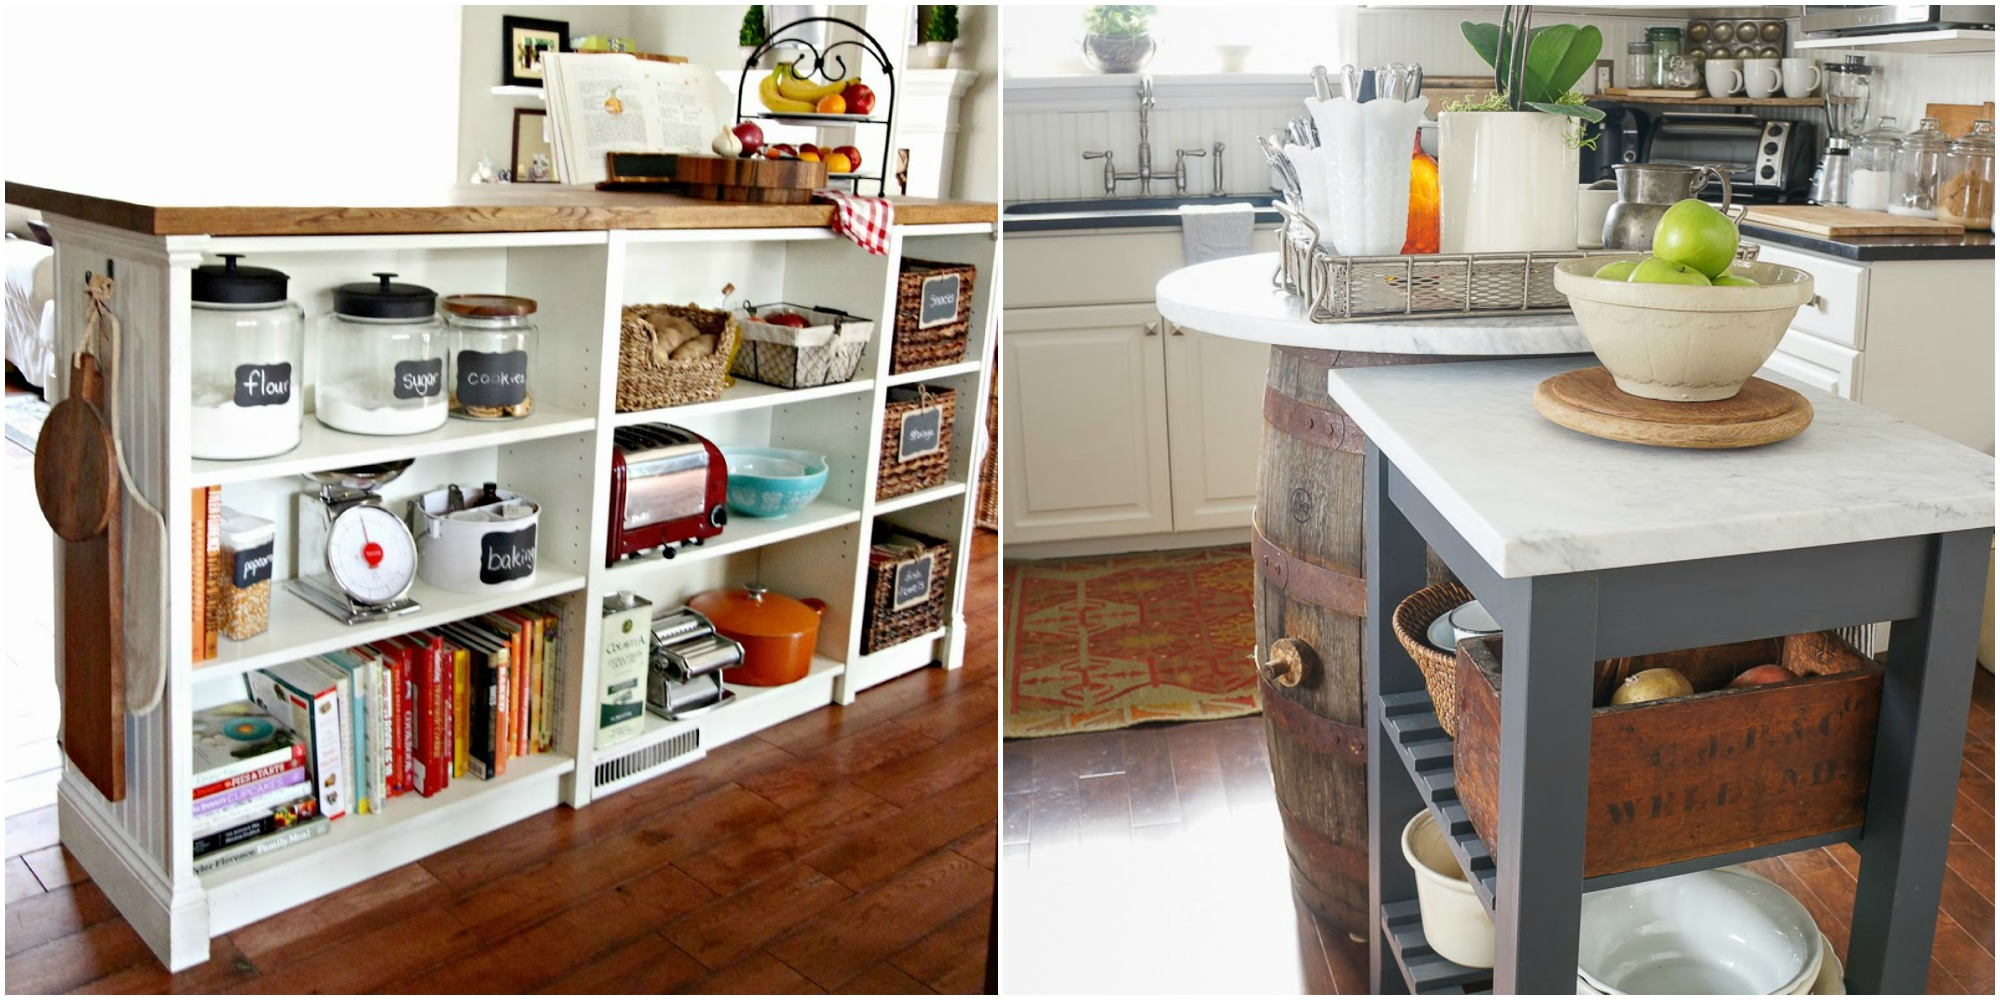 12 ikea kitchen ideas organize your kitchen with ikea hacks for Hacker kitchen designs